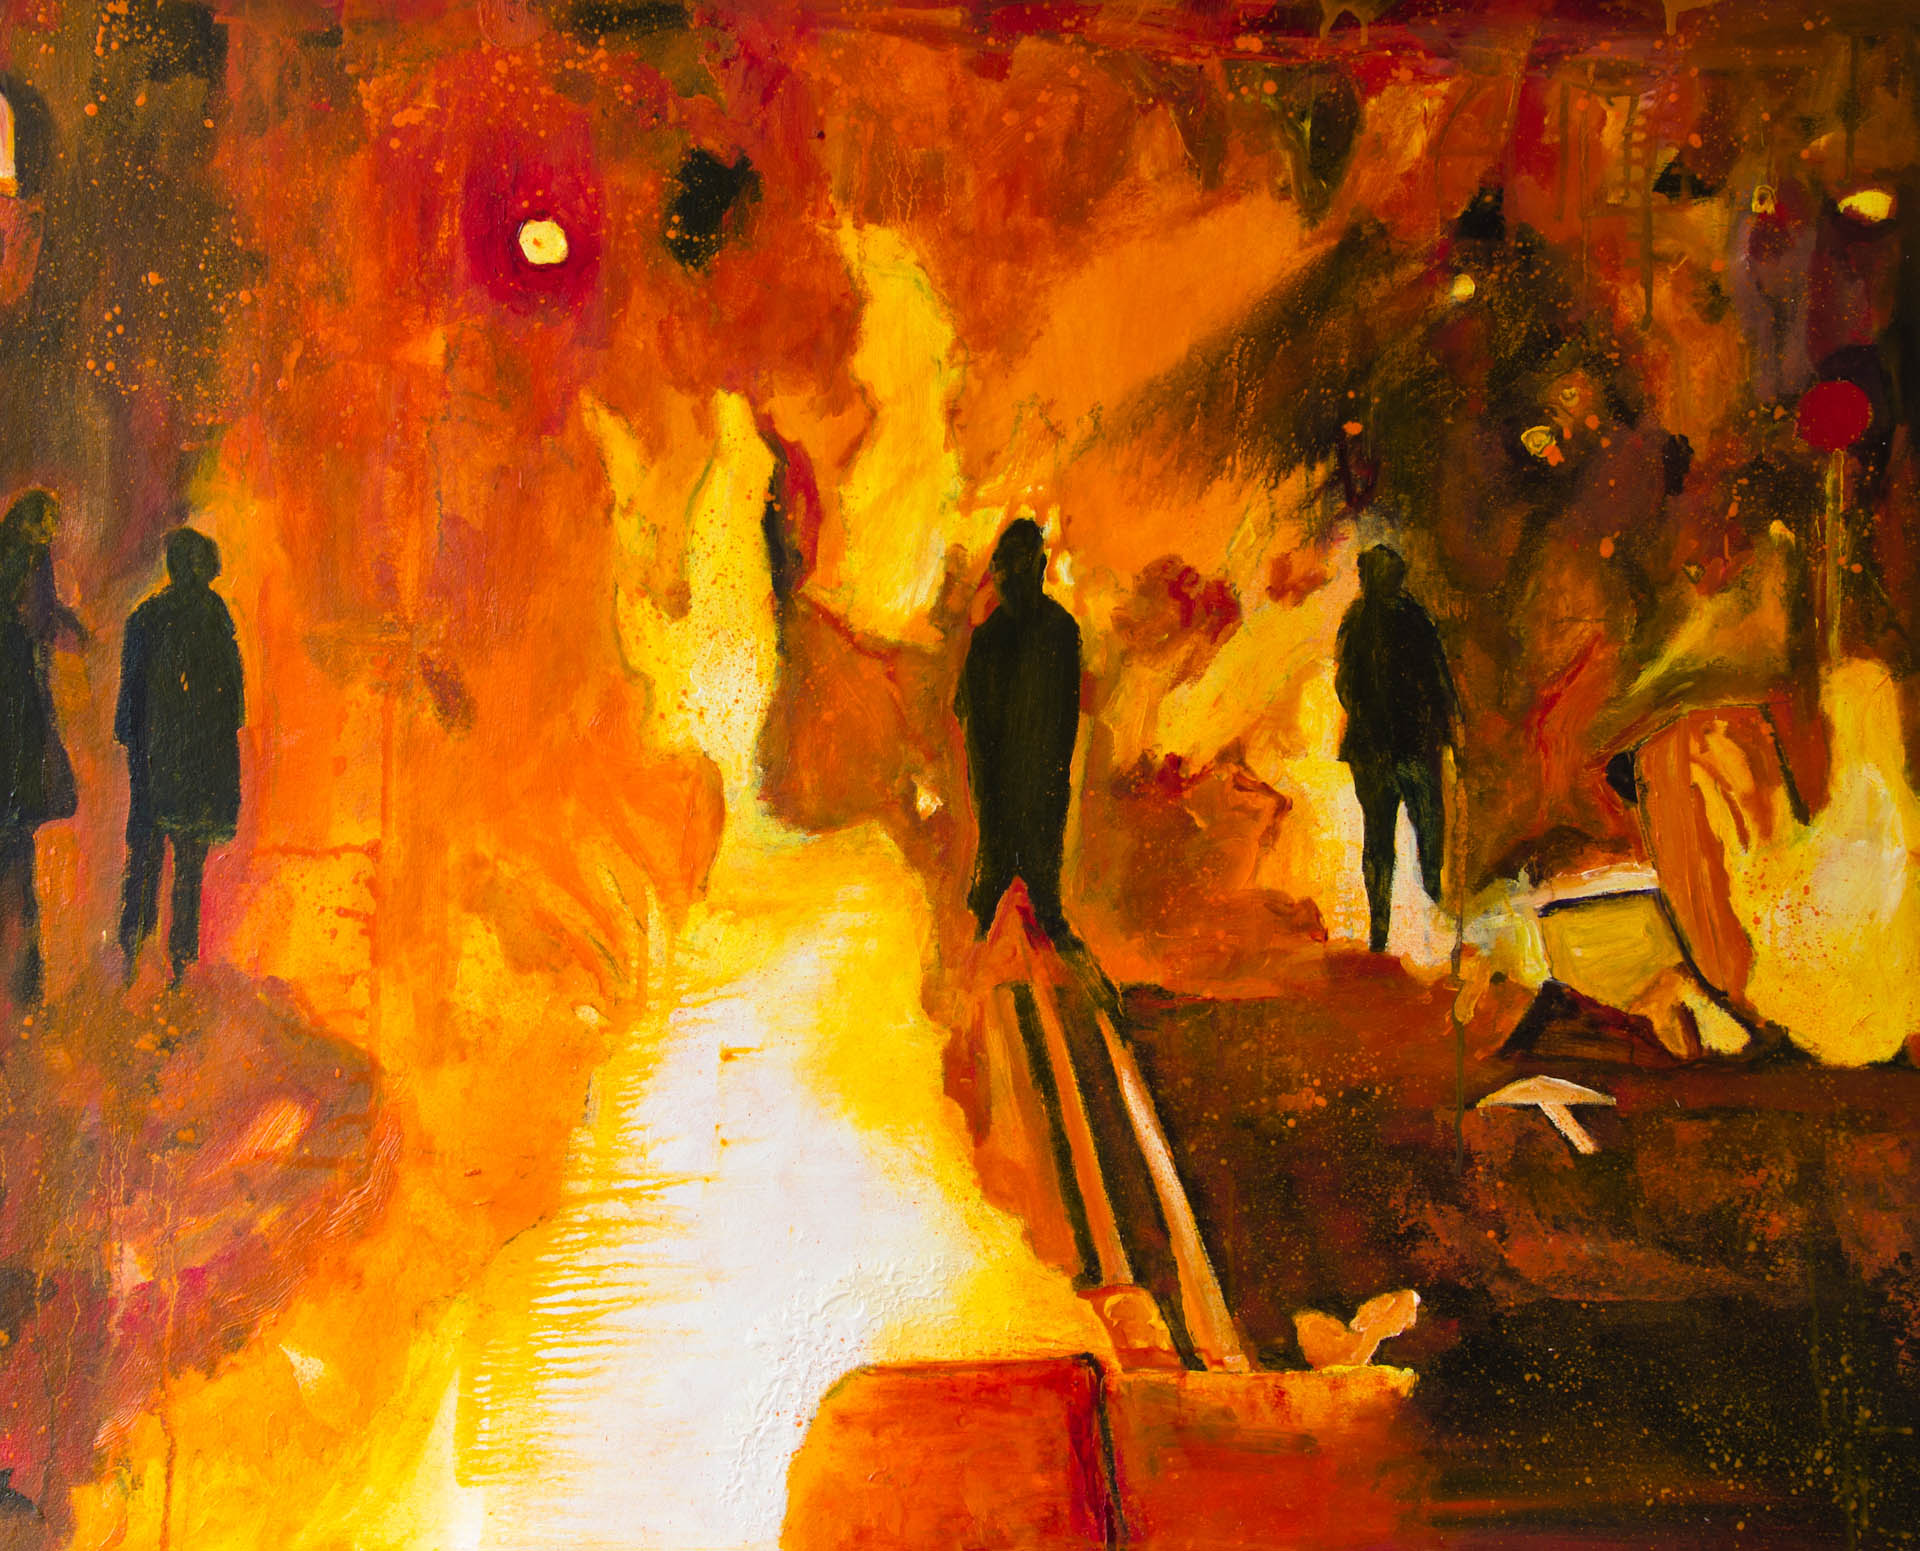 Fire_of_justice_oil_on_cardboard_80x100cm_2013.jpg